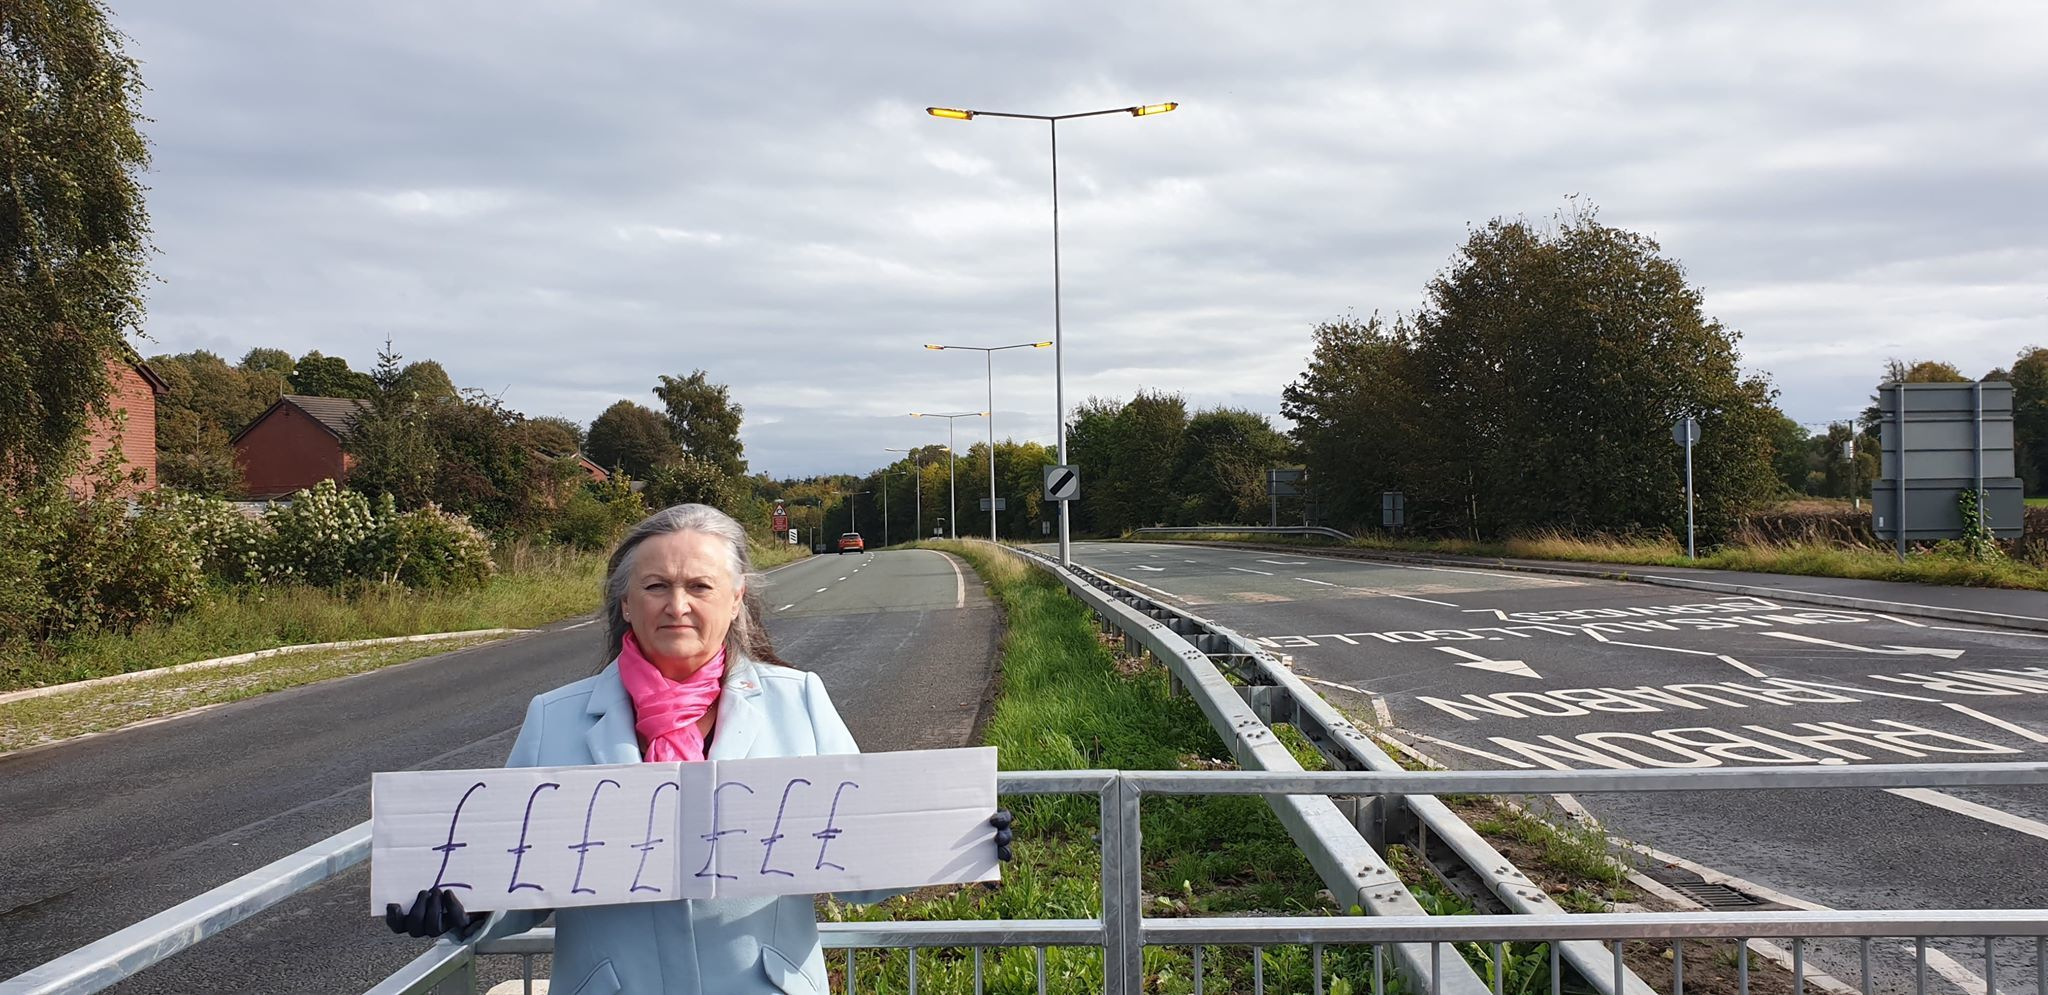 Ruabon resident blasts council over street lights left on 24 hours a day